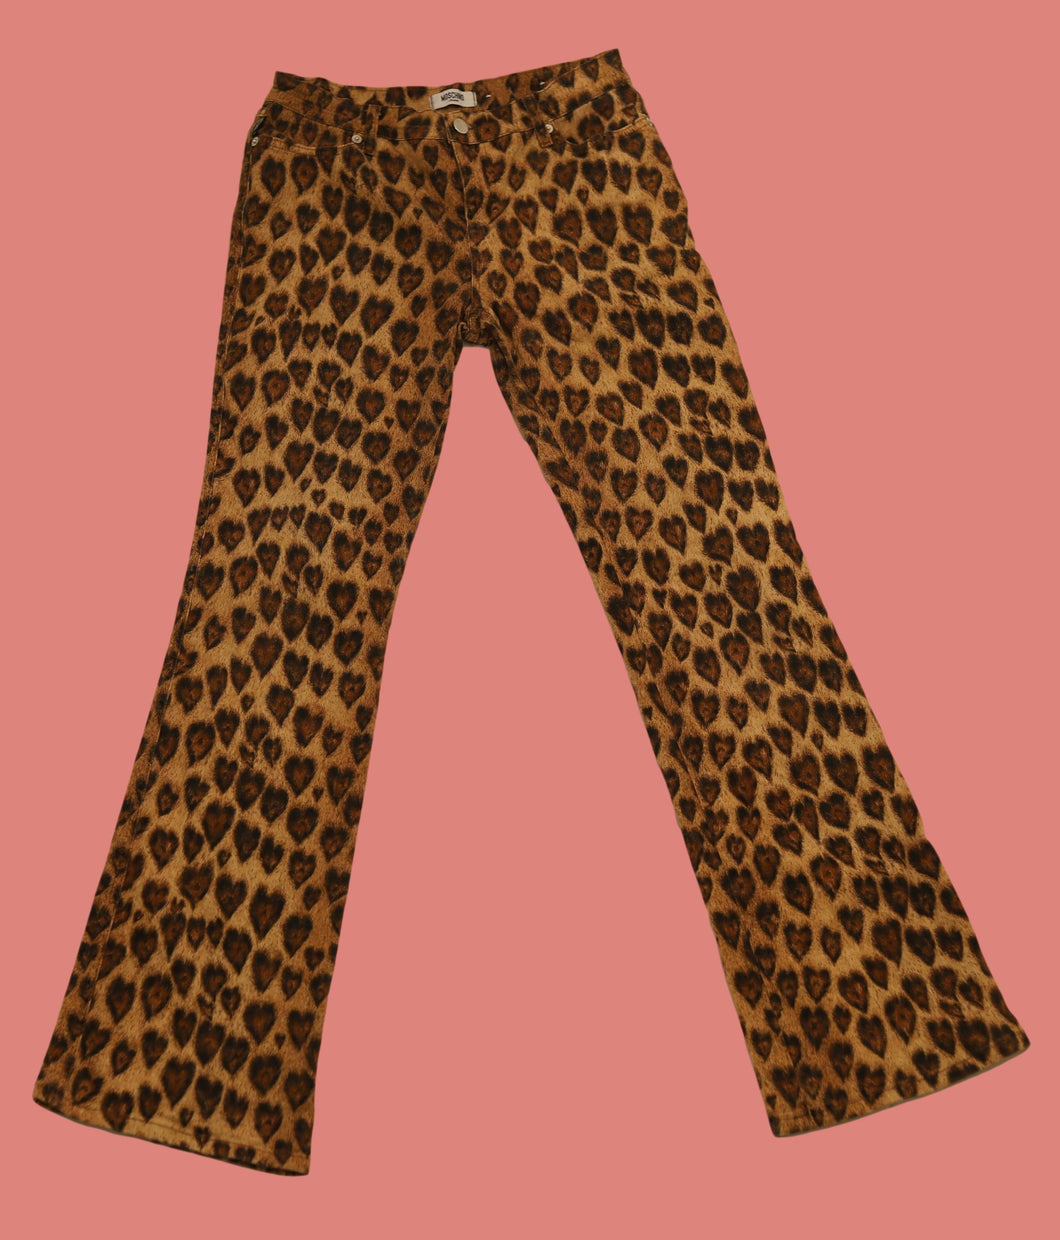 RARE Vintage 90s 00s y2k Heart Animal Print Moschino Jeans Trousers Pant